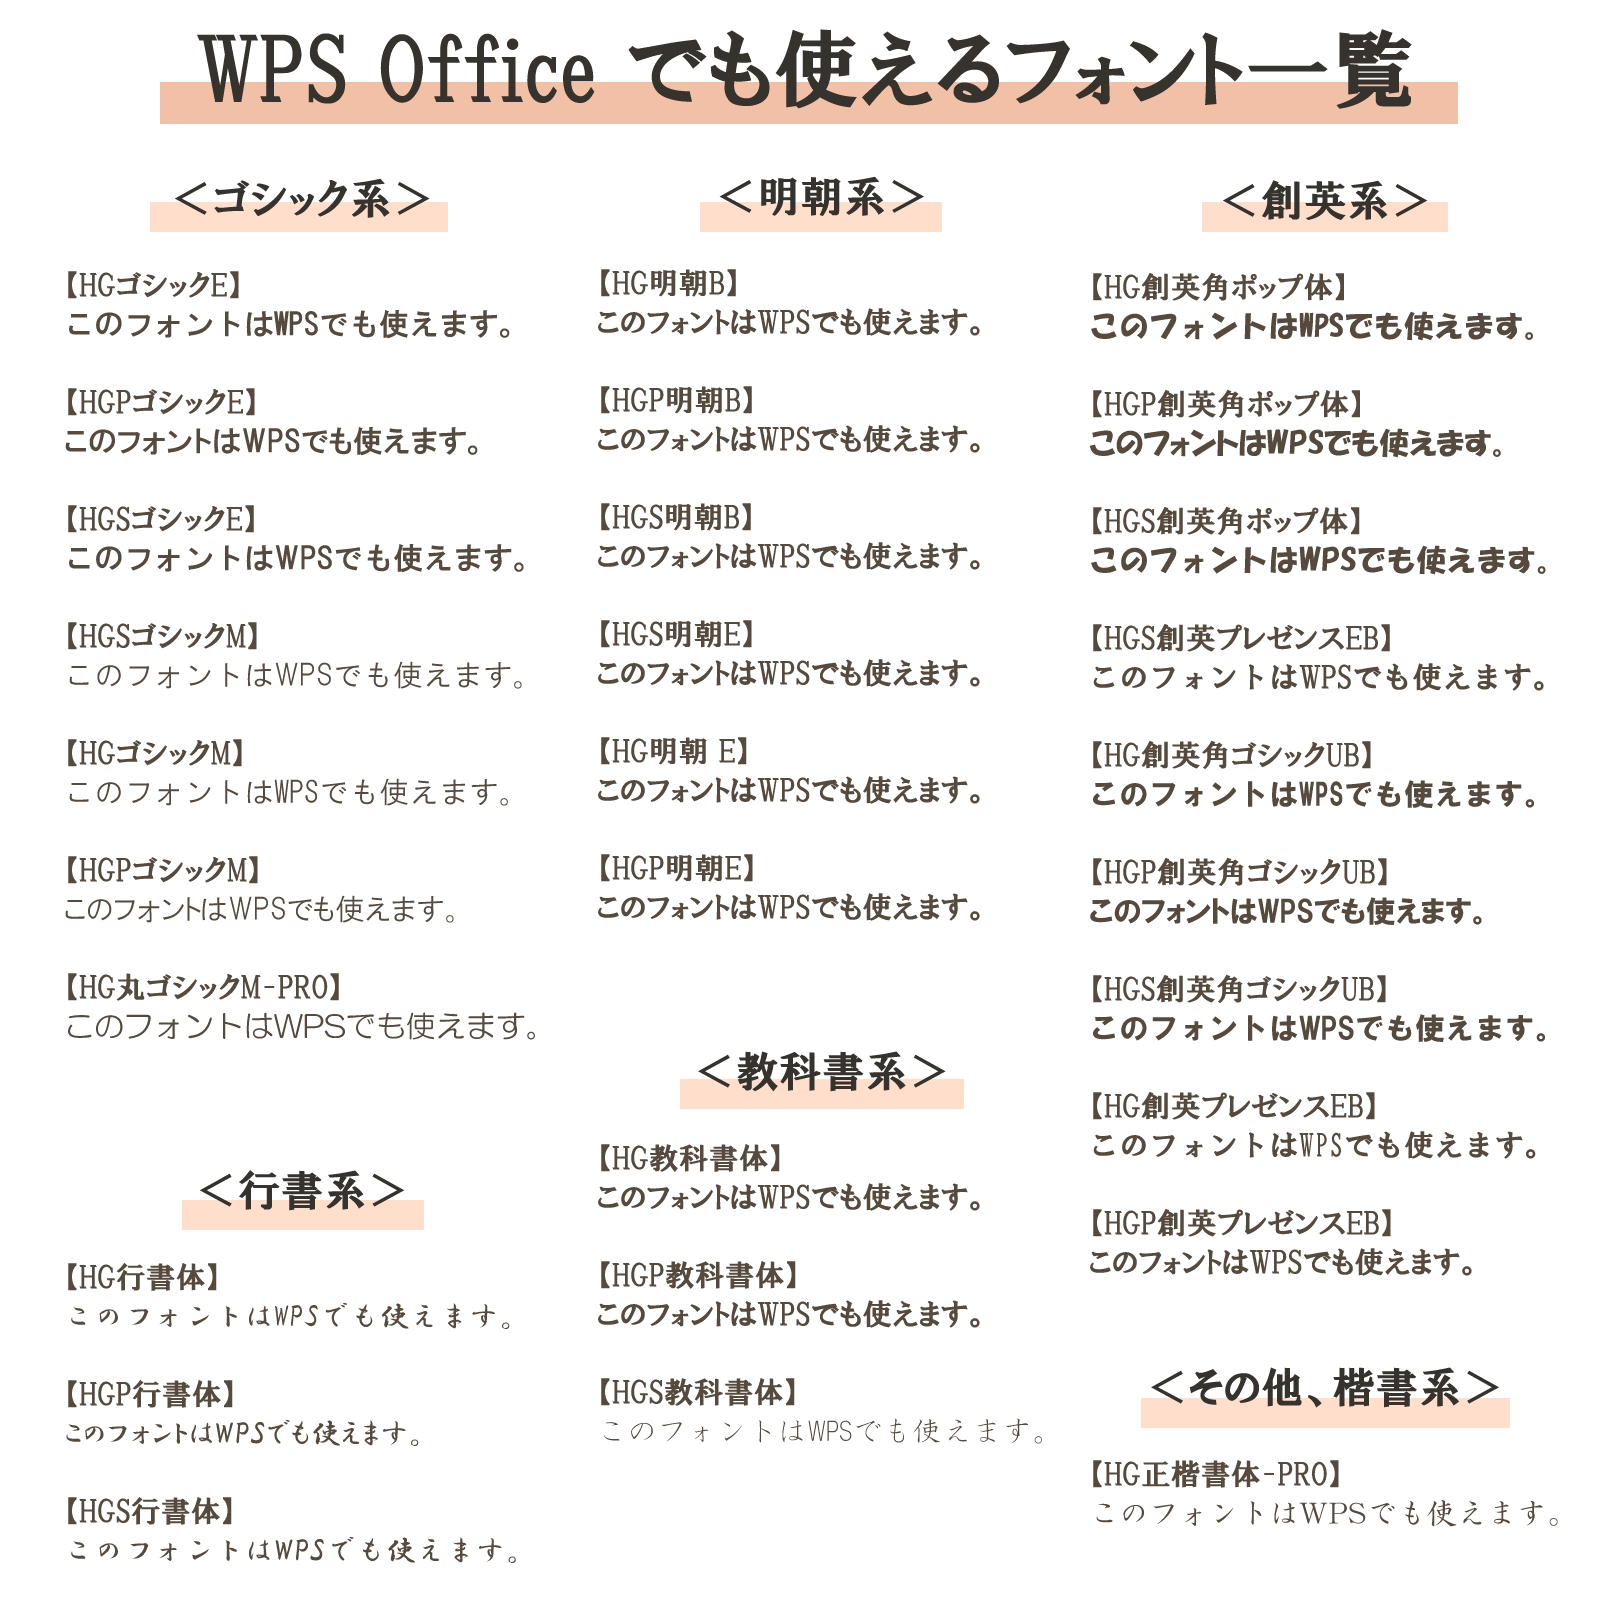 WPS Office でも使えるフォント一覧